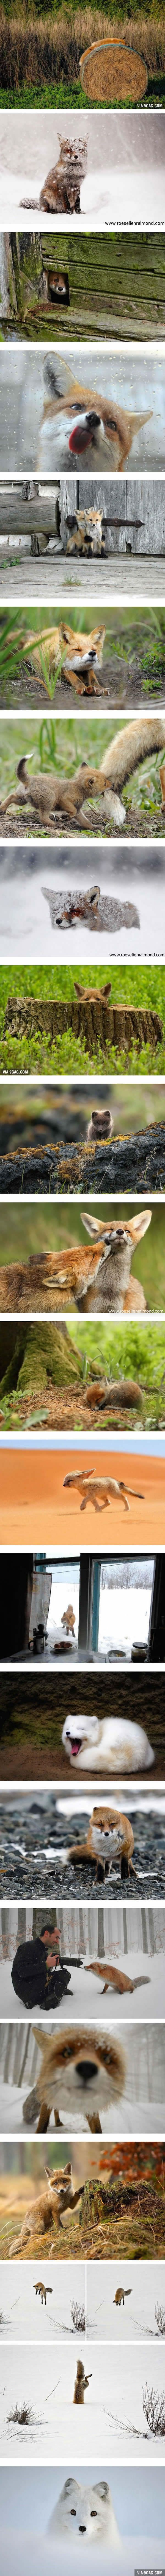 22 Photos Make You Fall In Love With Foxes (#2,8,11 By Roeselien Raimond ) - 9GAG